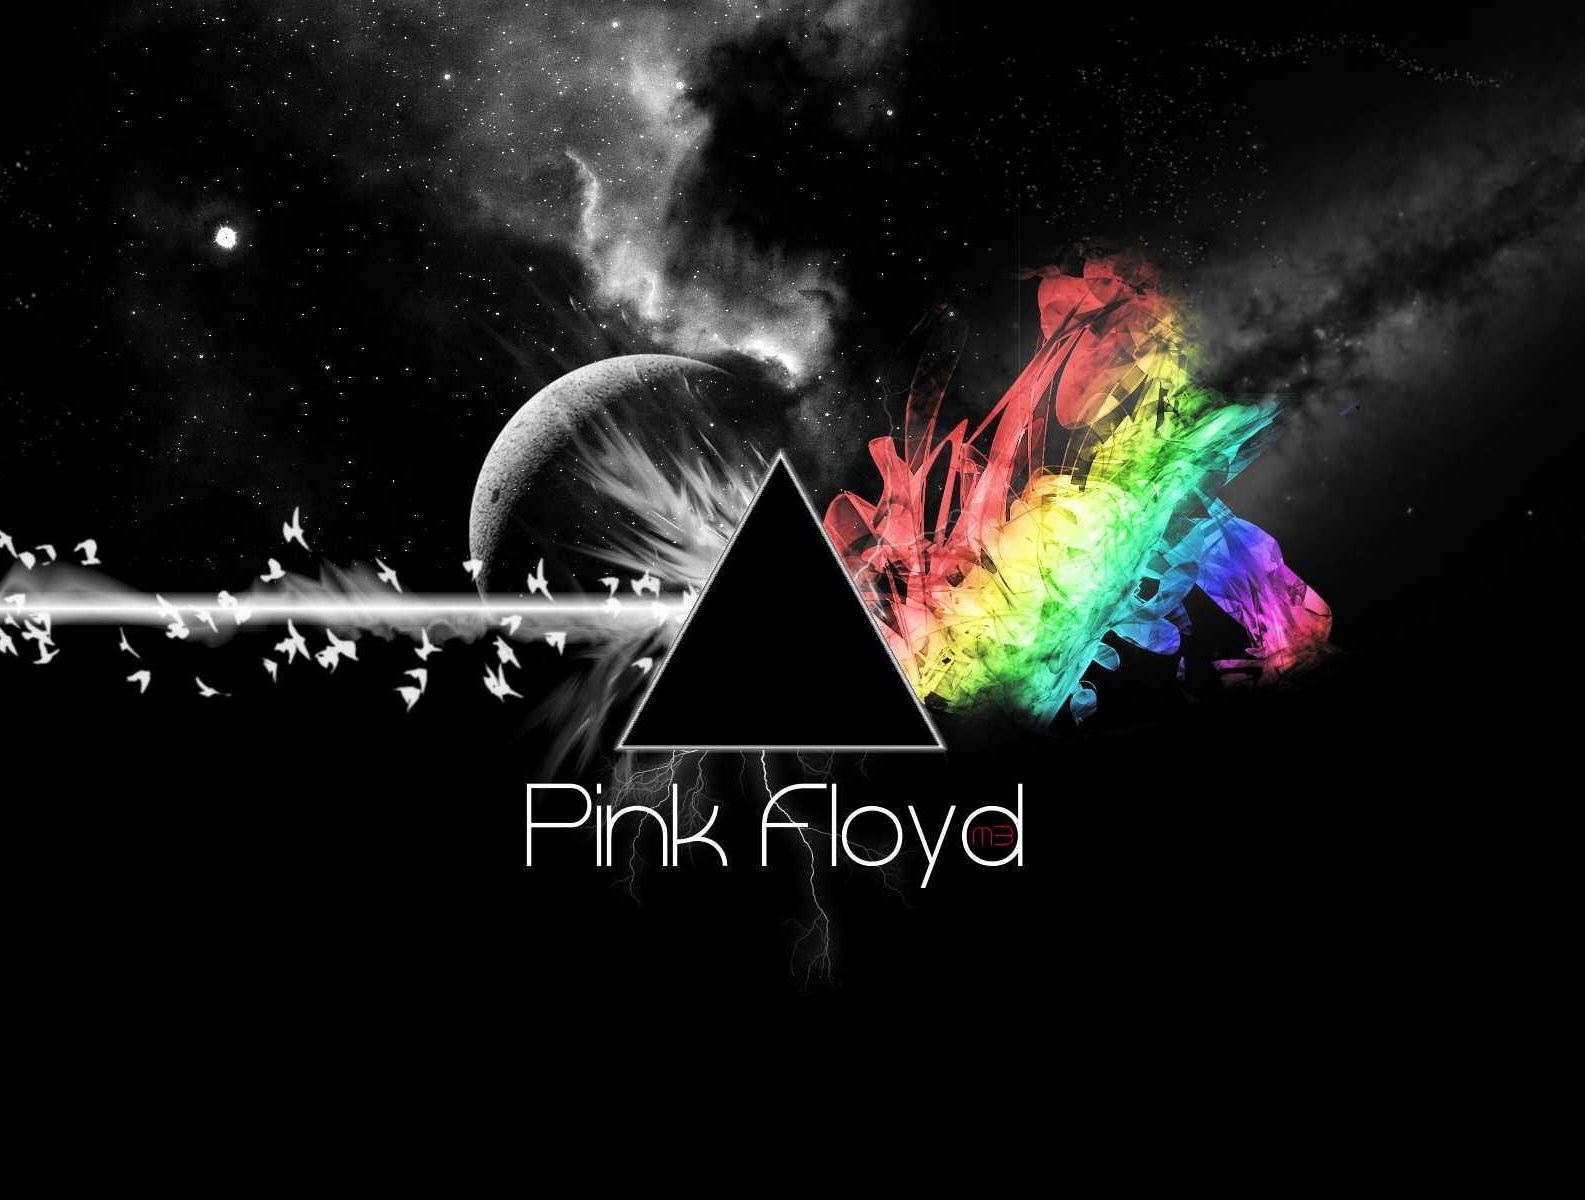 pink floyd pink-floyd dark HD Wallpaper